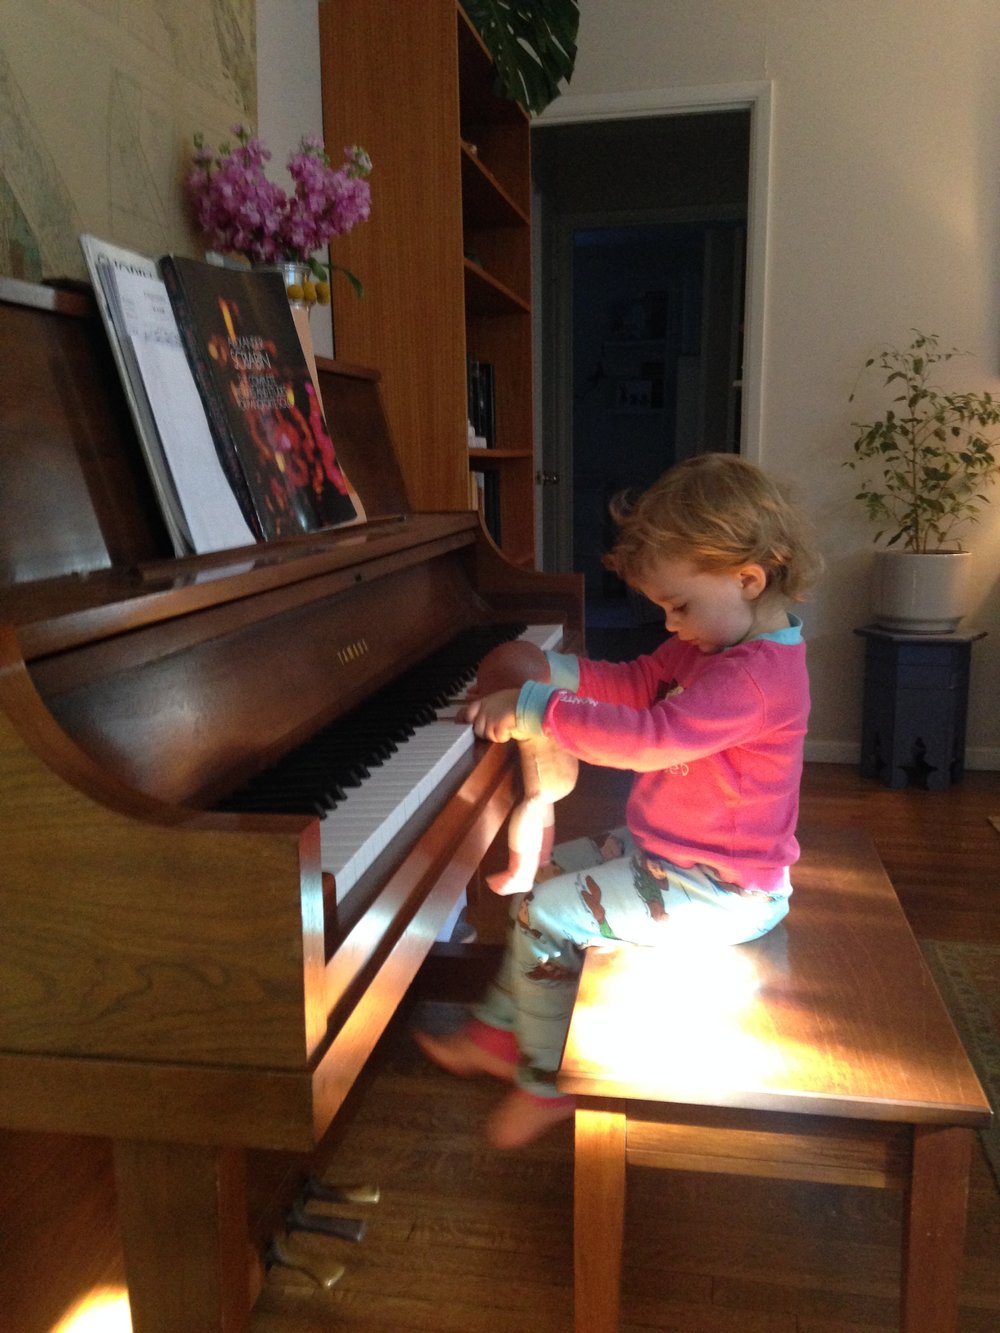 My resilient first-born, Penelope, with her own baby at the piano bench. Scriabin sheet music on the stand.